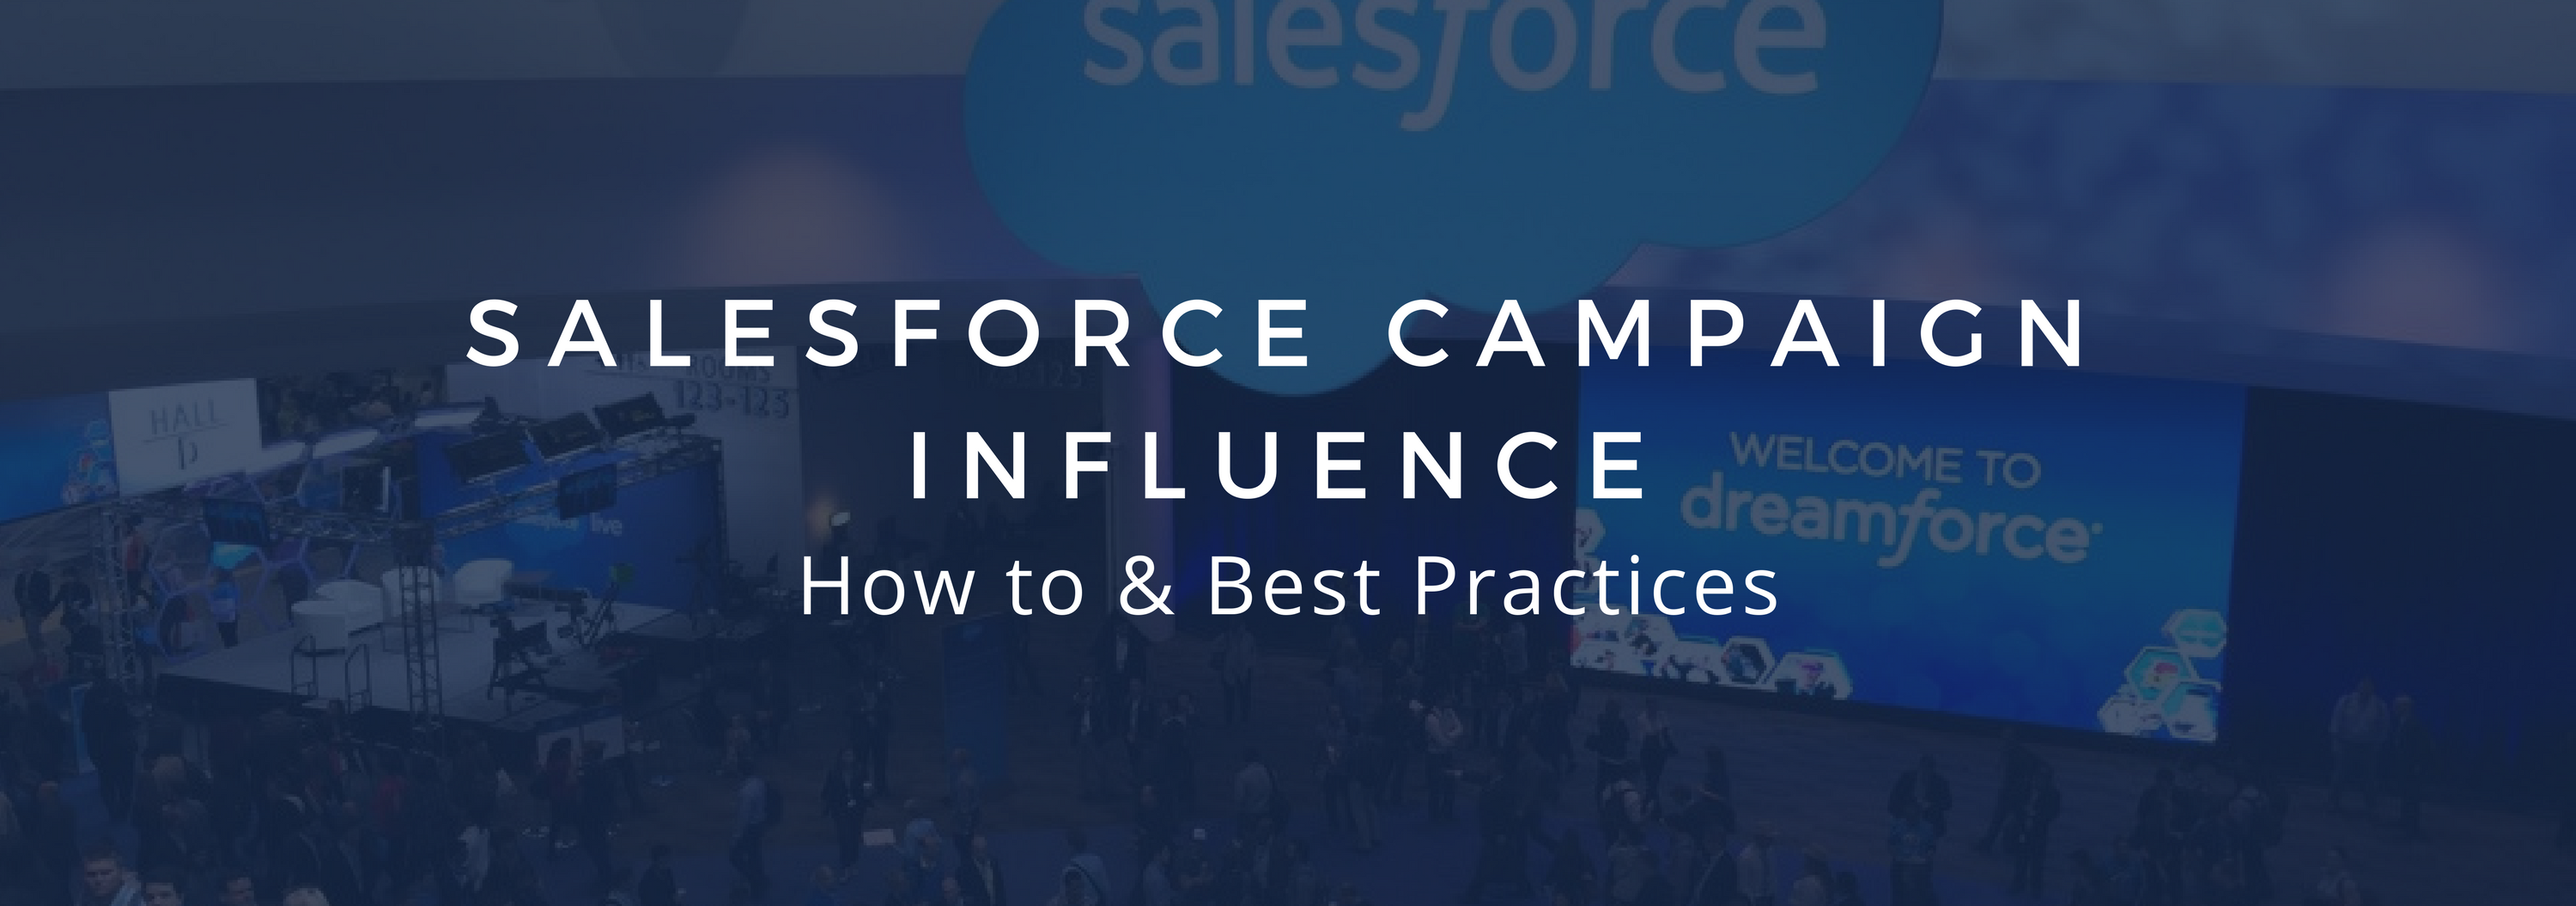 Salesforce campaign influence marketing attribution how to fandeluxe Images